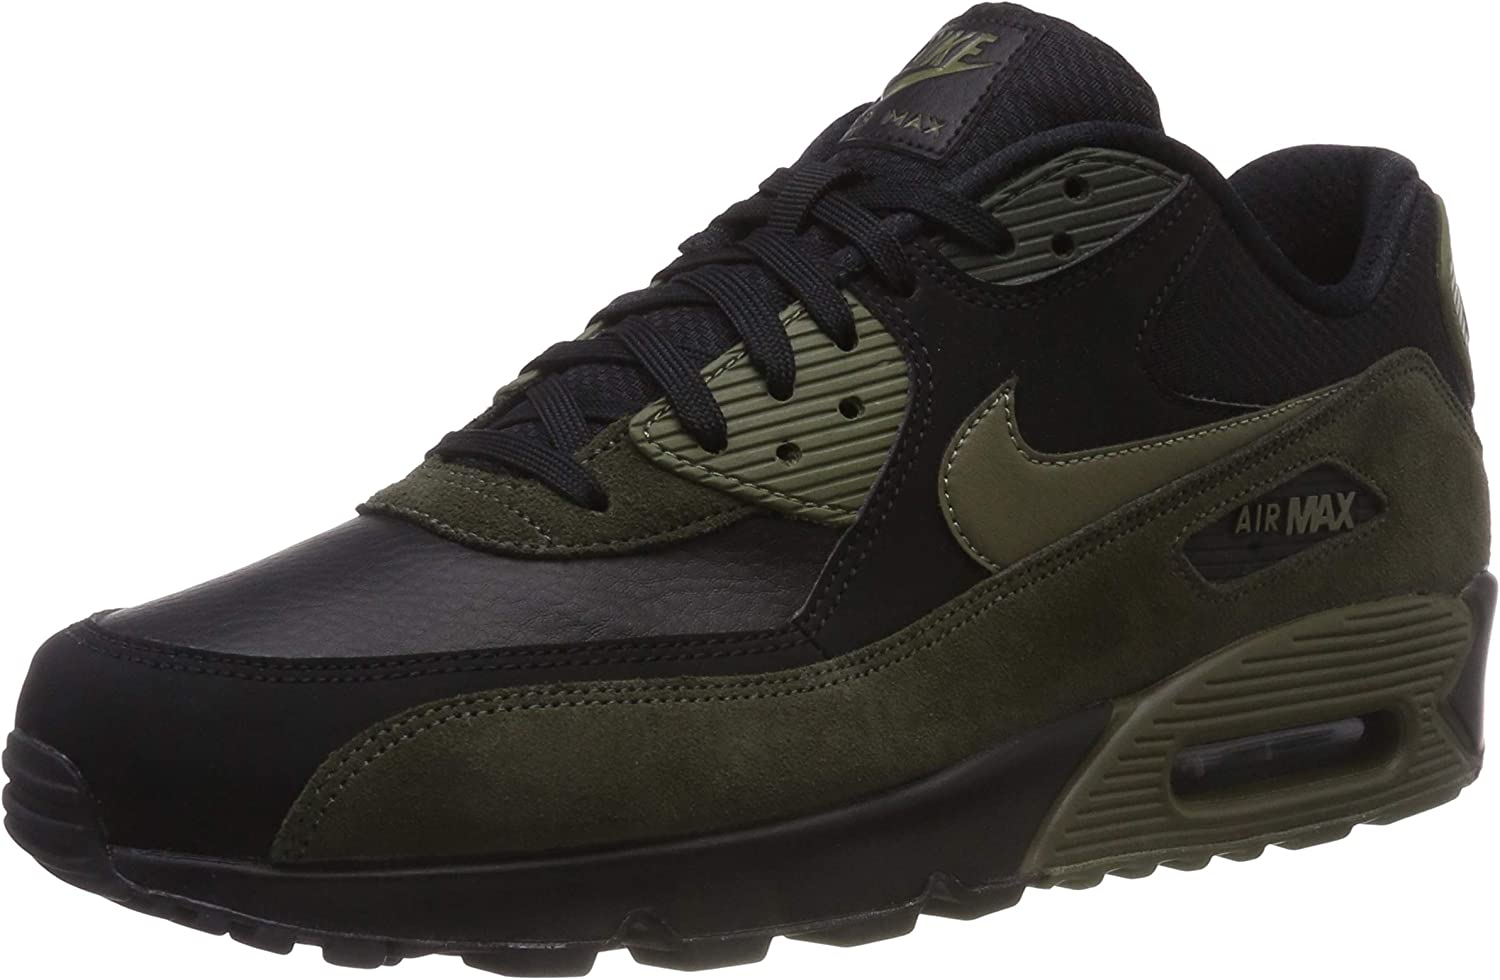 Nike Mens Air Max 90 Leather Running shoes Black Medium Olive Sequoia 302519-014 Size 8.5